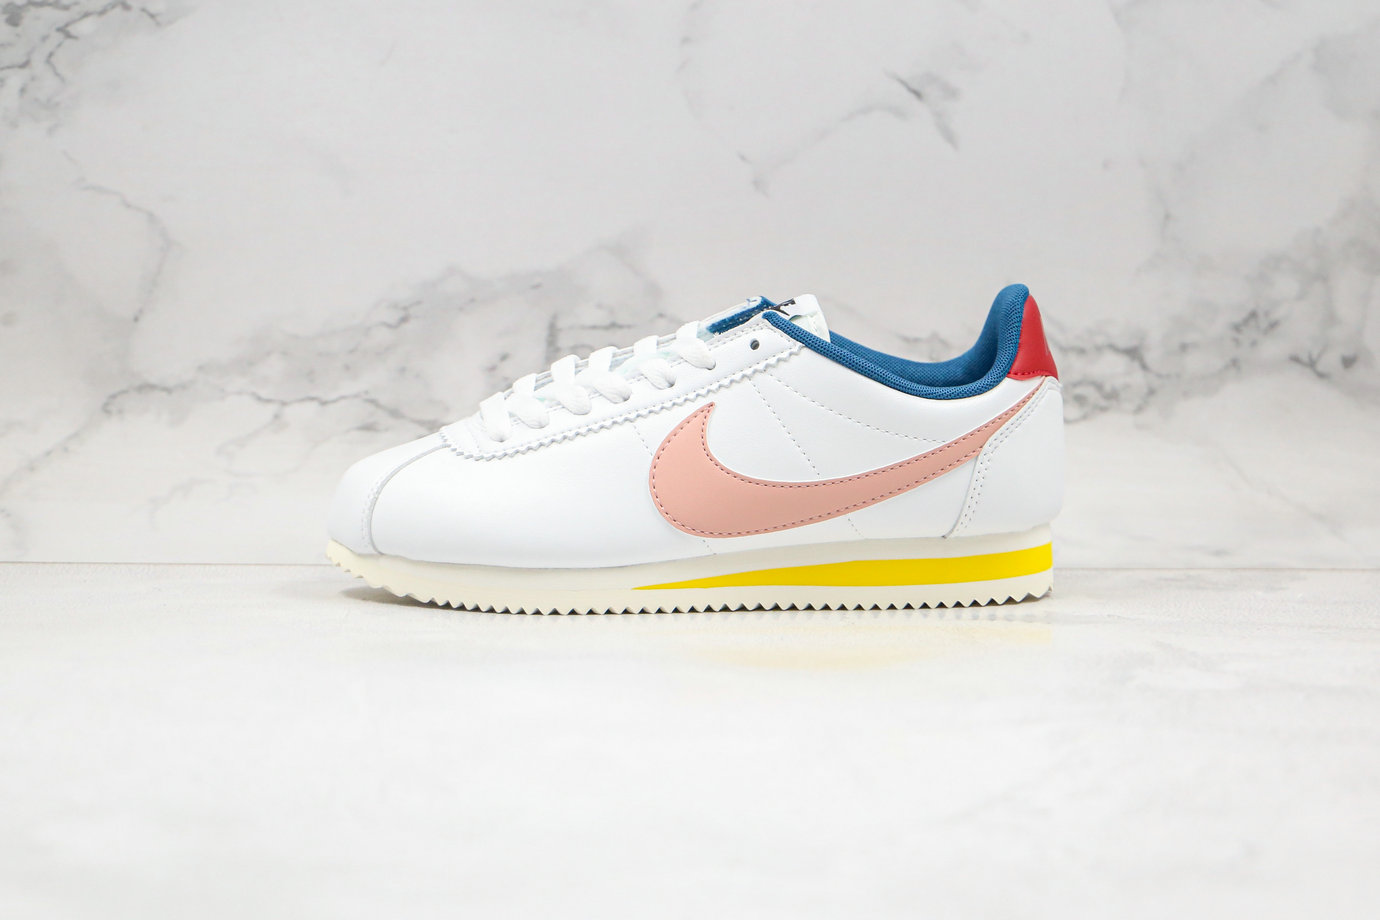 2020 Womens Cheapest Nike Classic Cortez Leather Summit White Coral Stardust 807471-114 - www.wholesaleflyknit.com